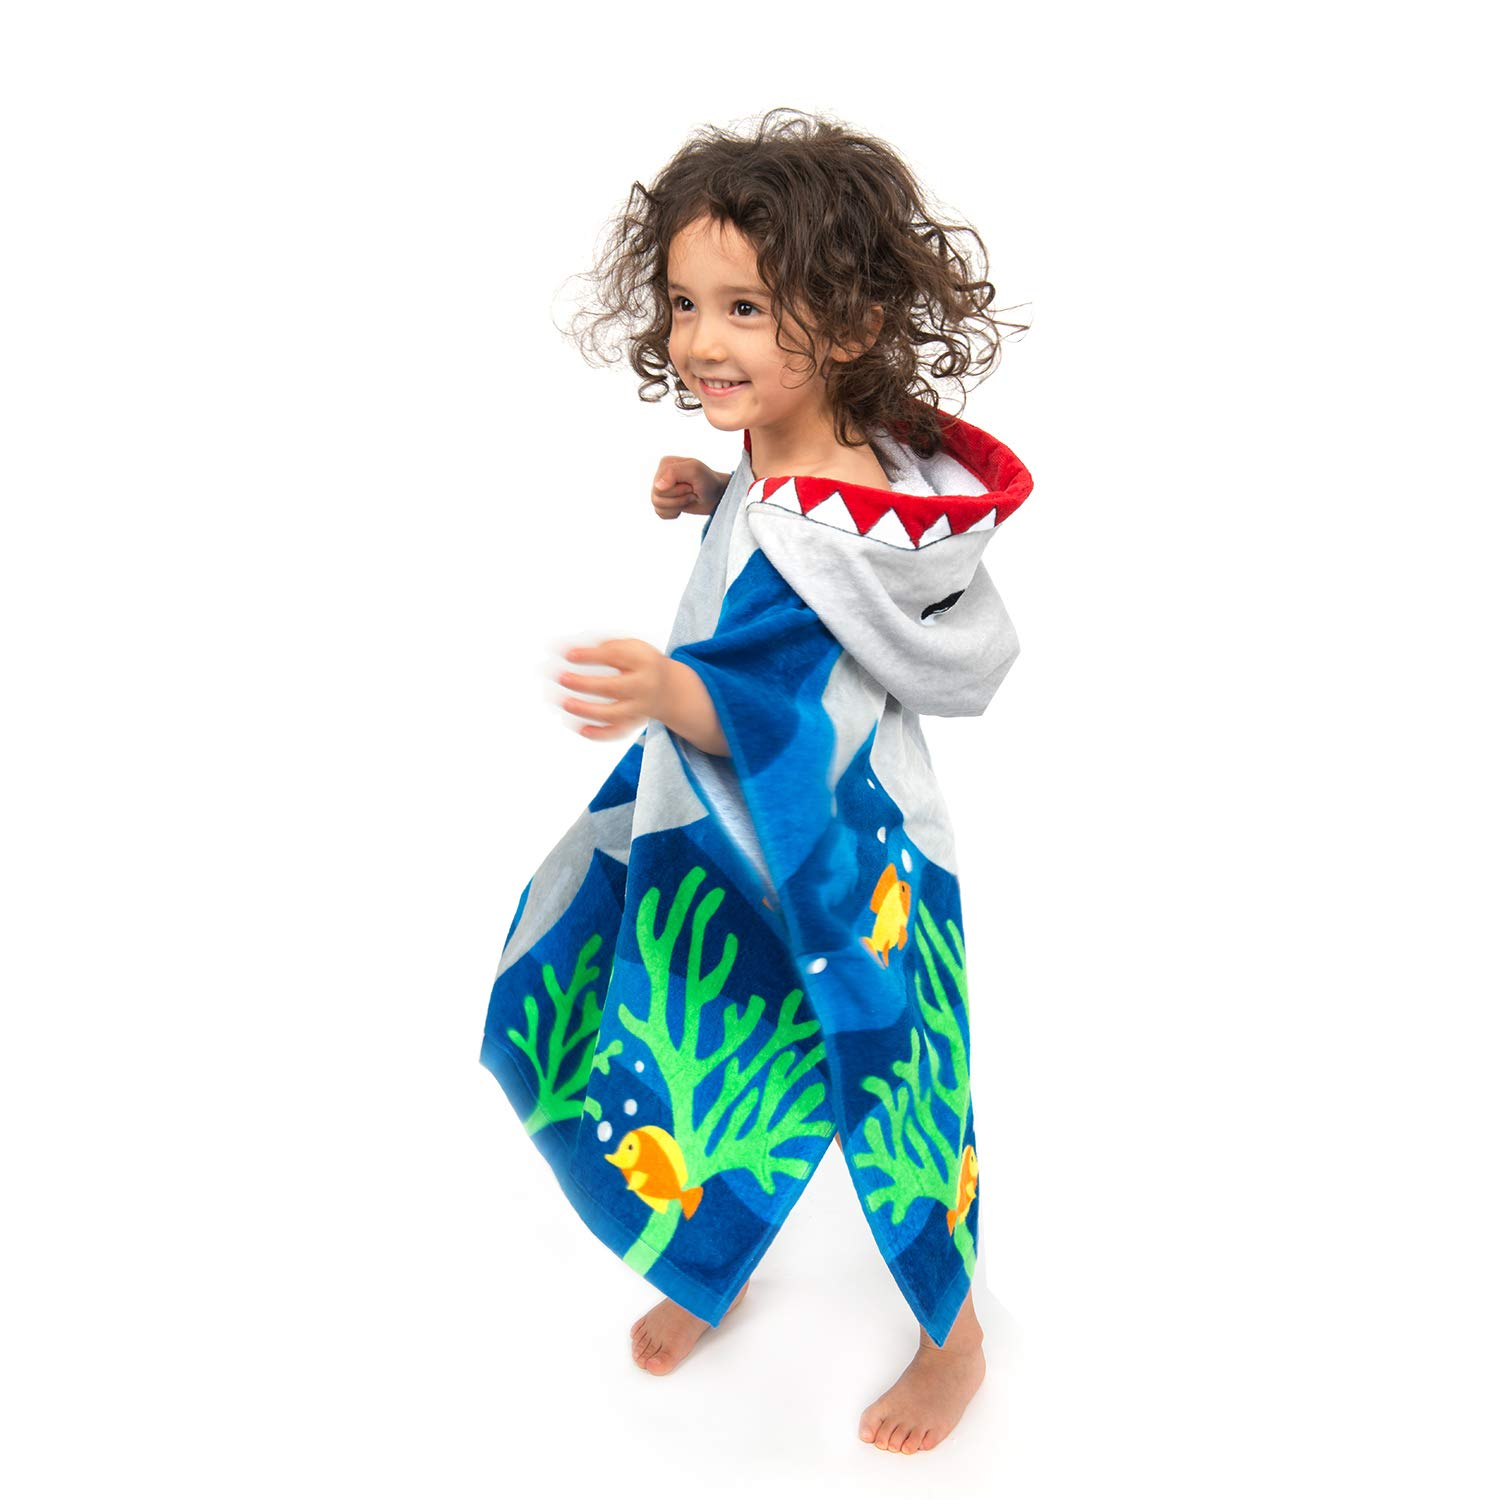 ZINGLIFE Hooded Towels for Kids Baby Boys Girls Toddlers Child Poncho Bath Towel for Beach Pool 100% Cotton Ultra Breathable Soft Enough Thick for Winter Size 24'' x 47''(Brave Shark) by ZINGLIFE (Image #2)